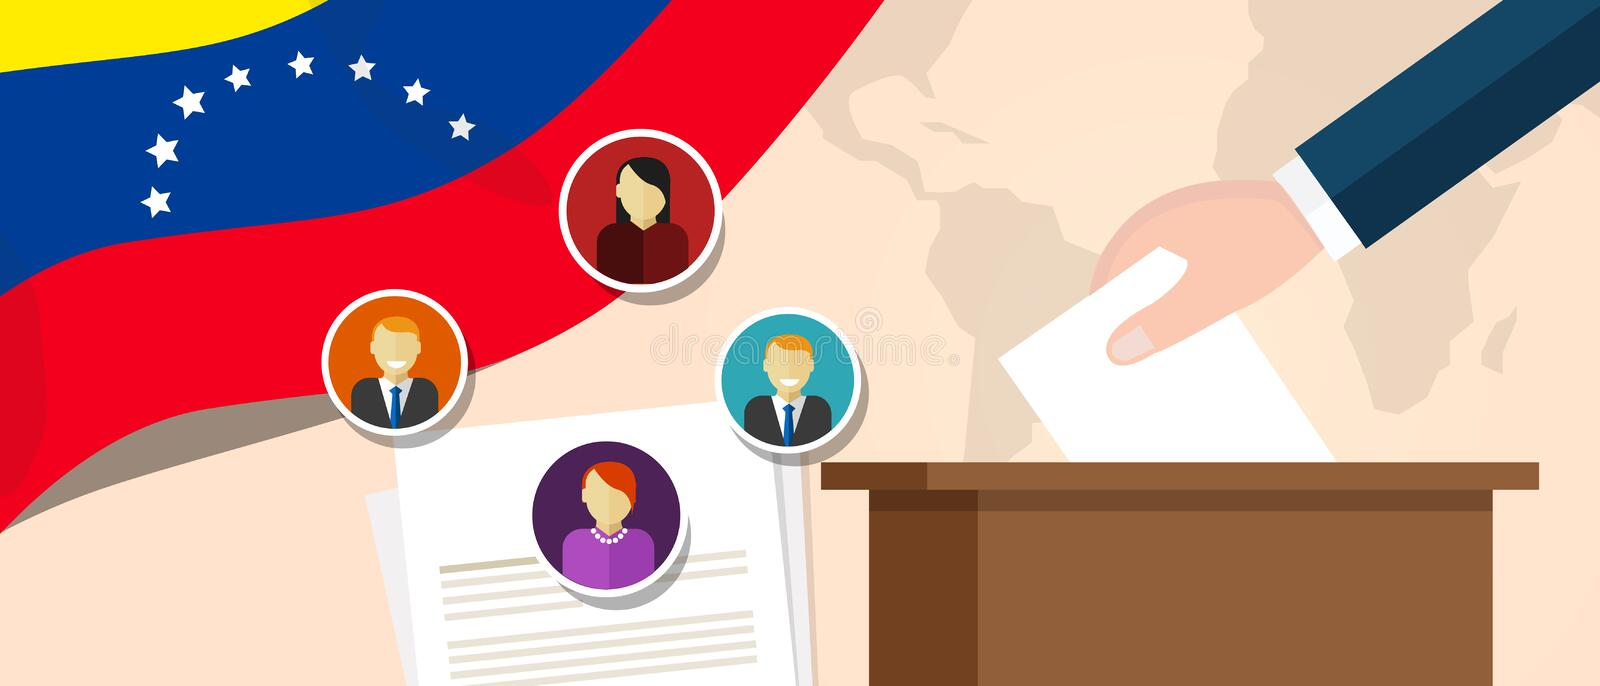 Venezuela democracy political process selecting president or parliament member with election and referendum freedom to. Vote vector stock illustration